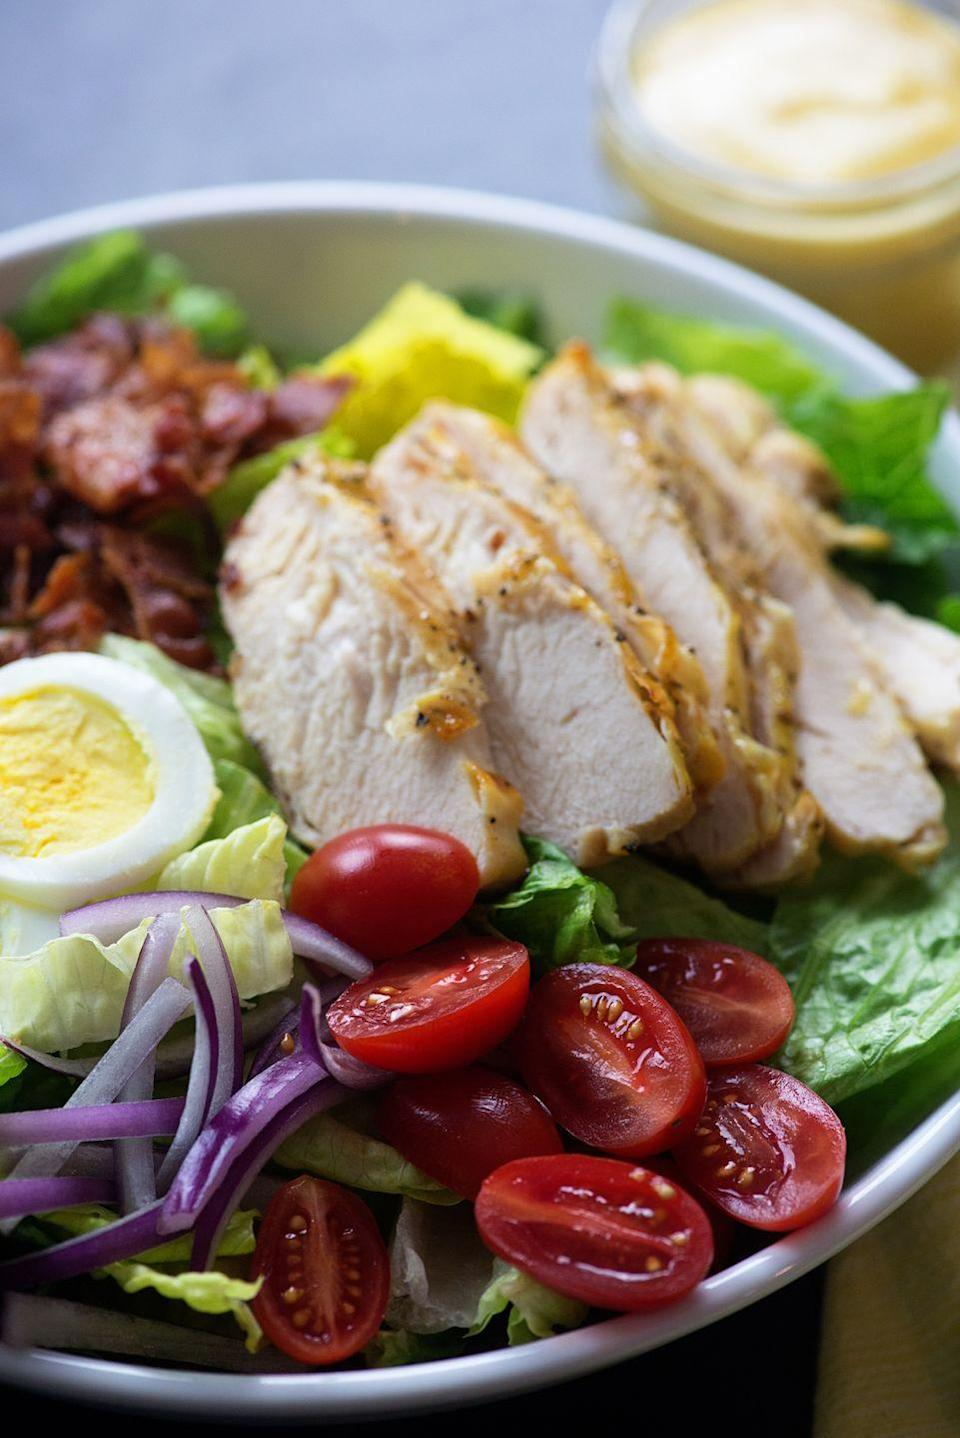 "<p>Honey and mustard were MFEO.</p><p>Get the recipe from <a href=""https://www.delish.com/cooking/recipe-ideas/recipes/a53057/grilled-honey-mustard-chicken-salad-recipe/"" rel=""nofollow noopener"" target=""_blank"" data-ylk=""slk:Delish"" class=""link rapid-noclick-resp"">Delish</a>.</p>"